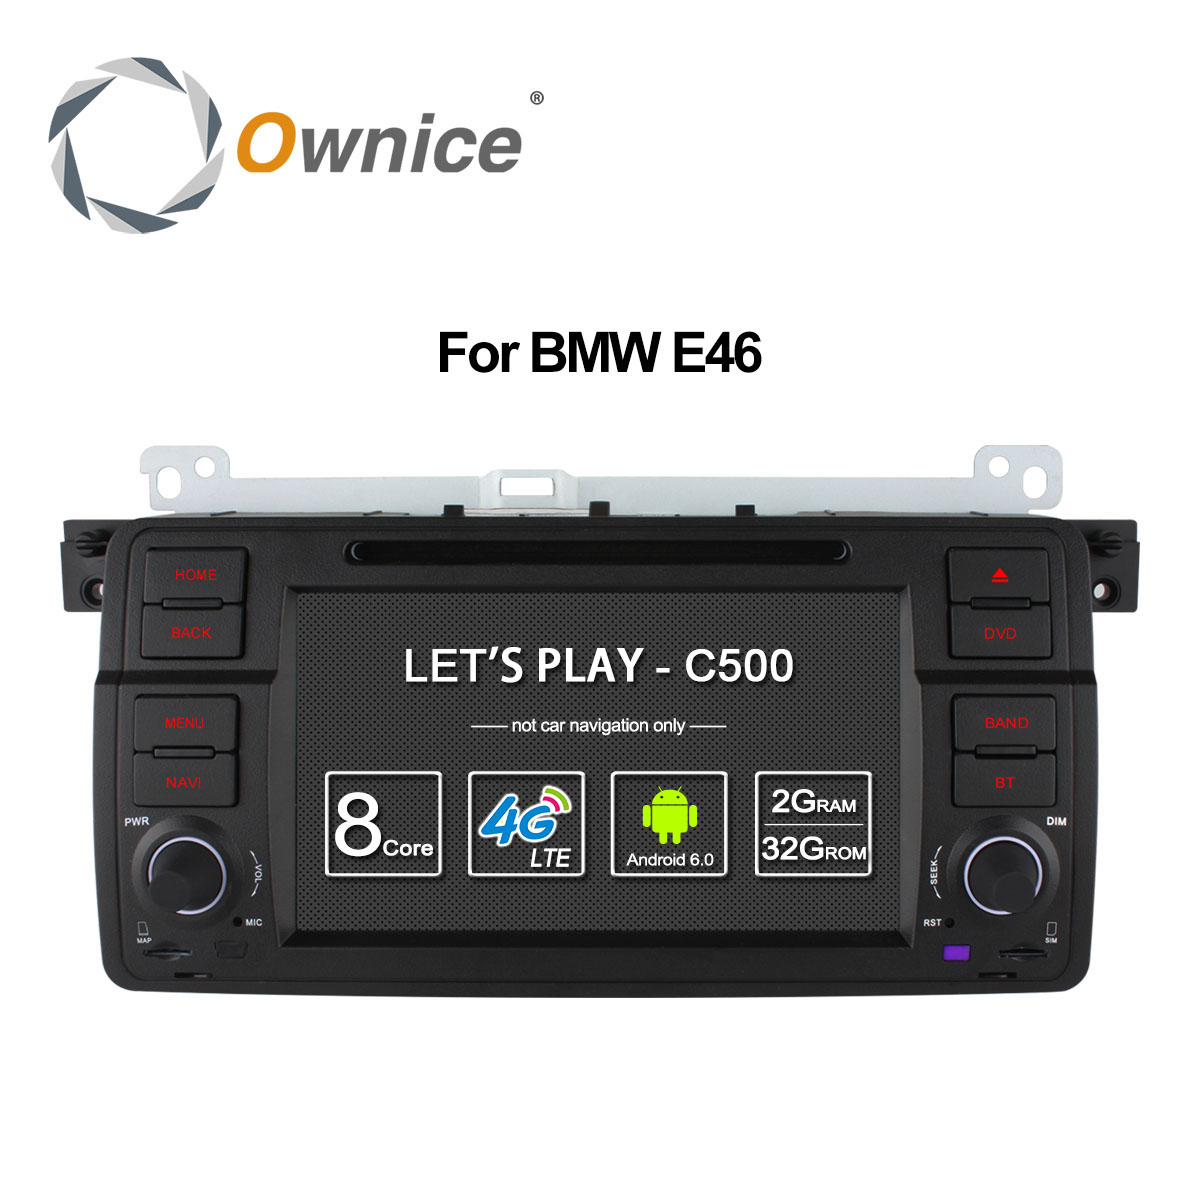 Ownice C500 Android 6.0 Octa 8 Core for bmw E46 M3 car dvd gps navi wifi 4G BT Radio RDS 2GB RAM 32GB ROM support DAB+ TPMS elsevier s dictionary of financial terms